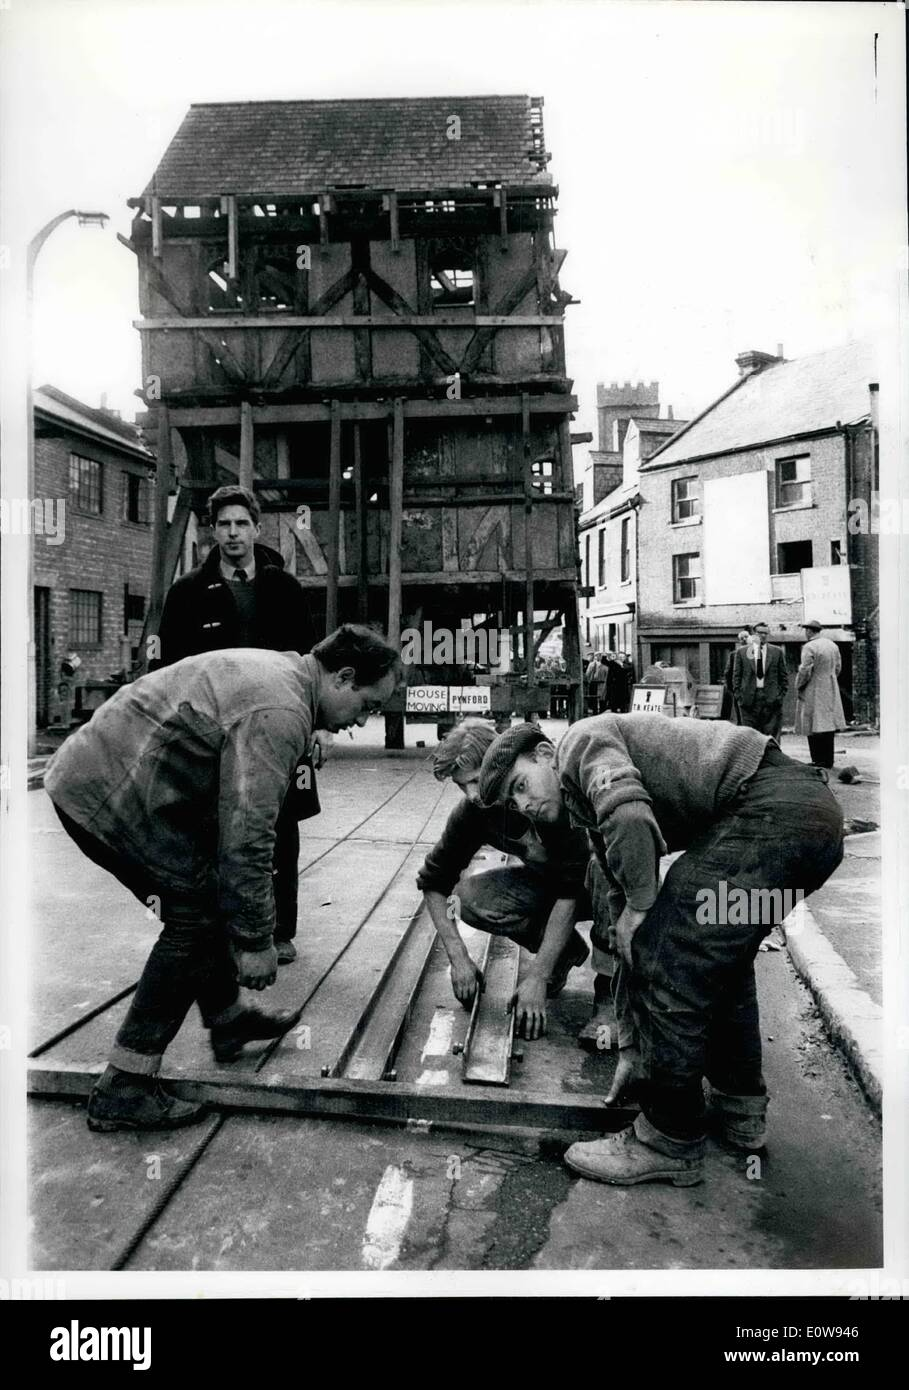 Dec. 12, 1961 - Daily Herald. London. Historic House Moved. A 14th cent. old half timbered house in Exeter, Devon, has had to be moved 300 feet because it was in the middle of a new road way which is being constructed. For over a month workman have been crating the building and today it was up a slope with a 1 in 10 gradient. One of the dangers was that the three storey building would topple over and great care had to be taken, hydraulic jacks were used to keep it level. The move taken because of the protests when it was suggested that the building should be demolished, is costing about ,000 - Stock Image